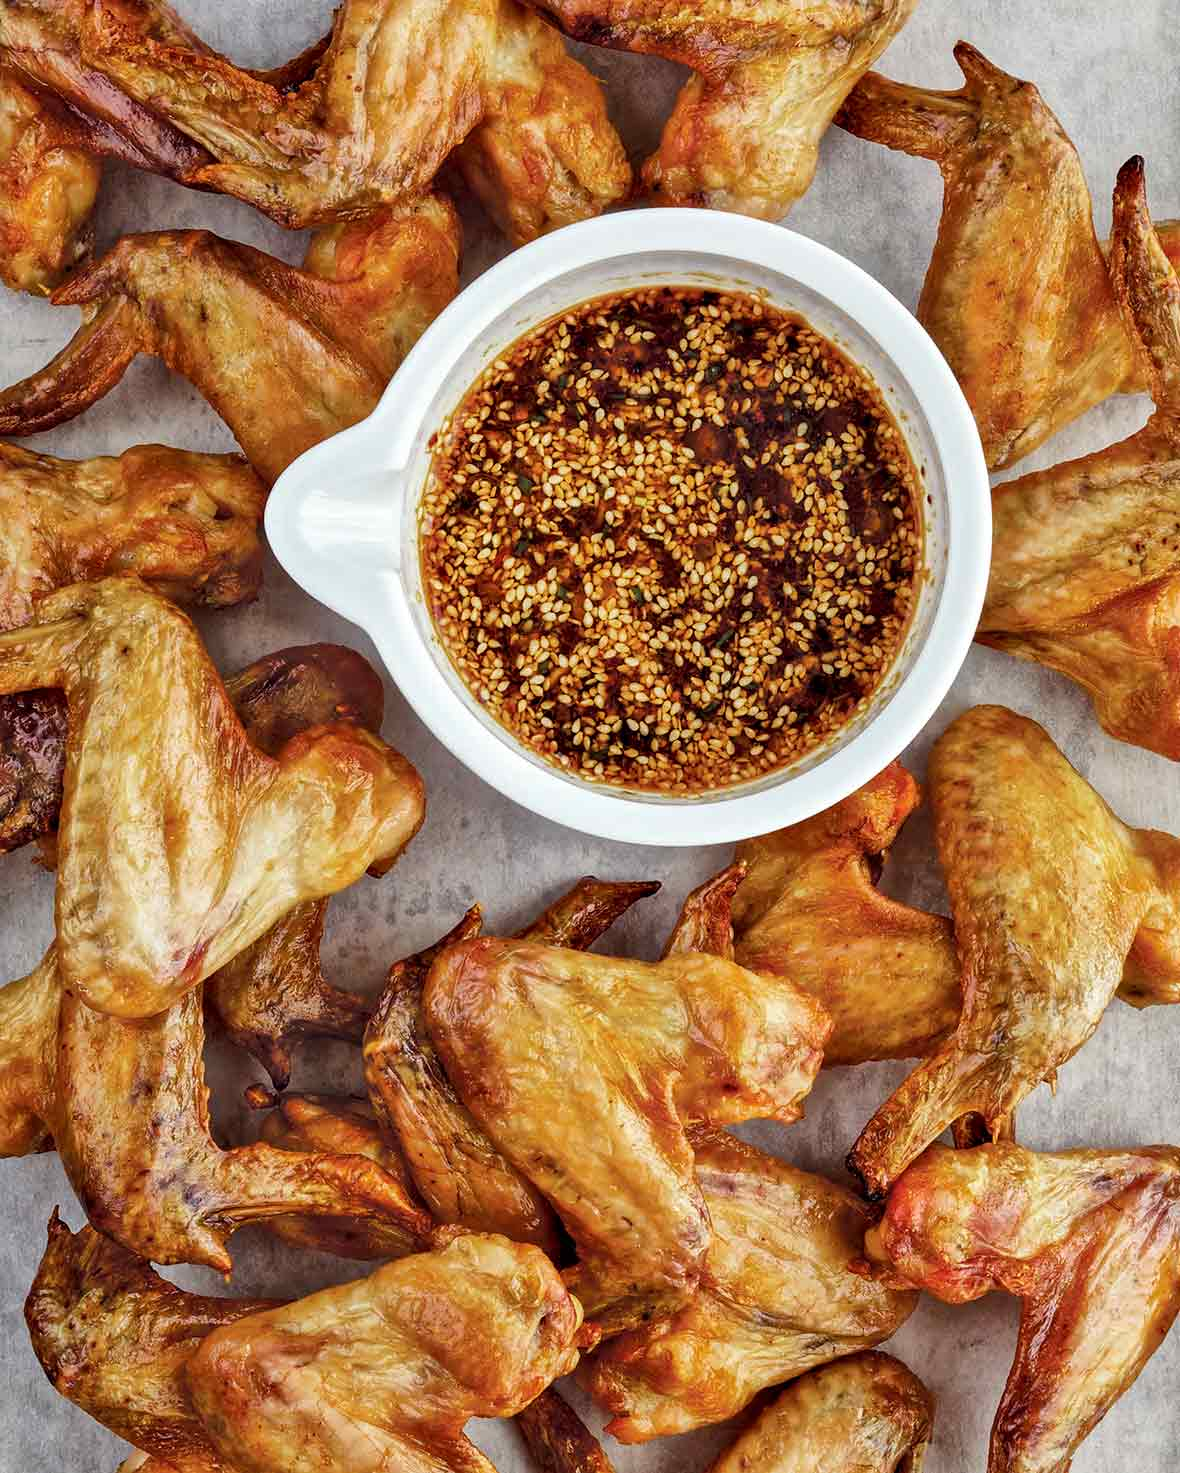 A pile of roasted chicken wings with a bowl of Korean dipping sauce with sesame seeds